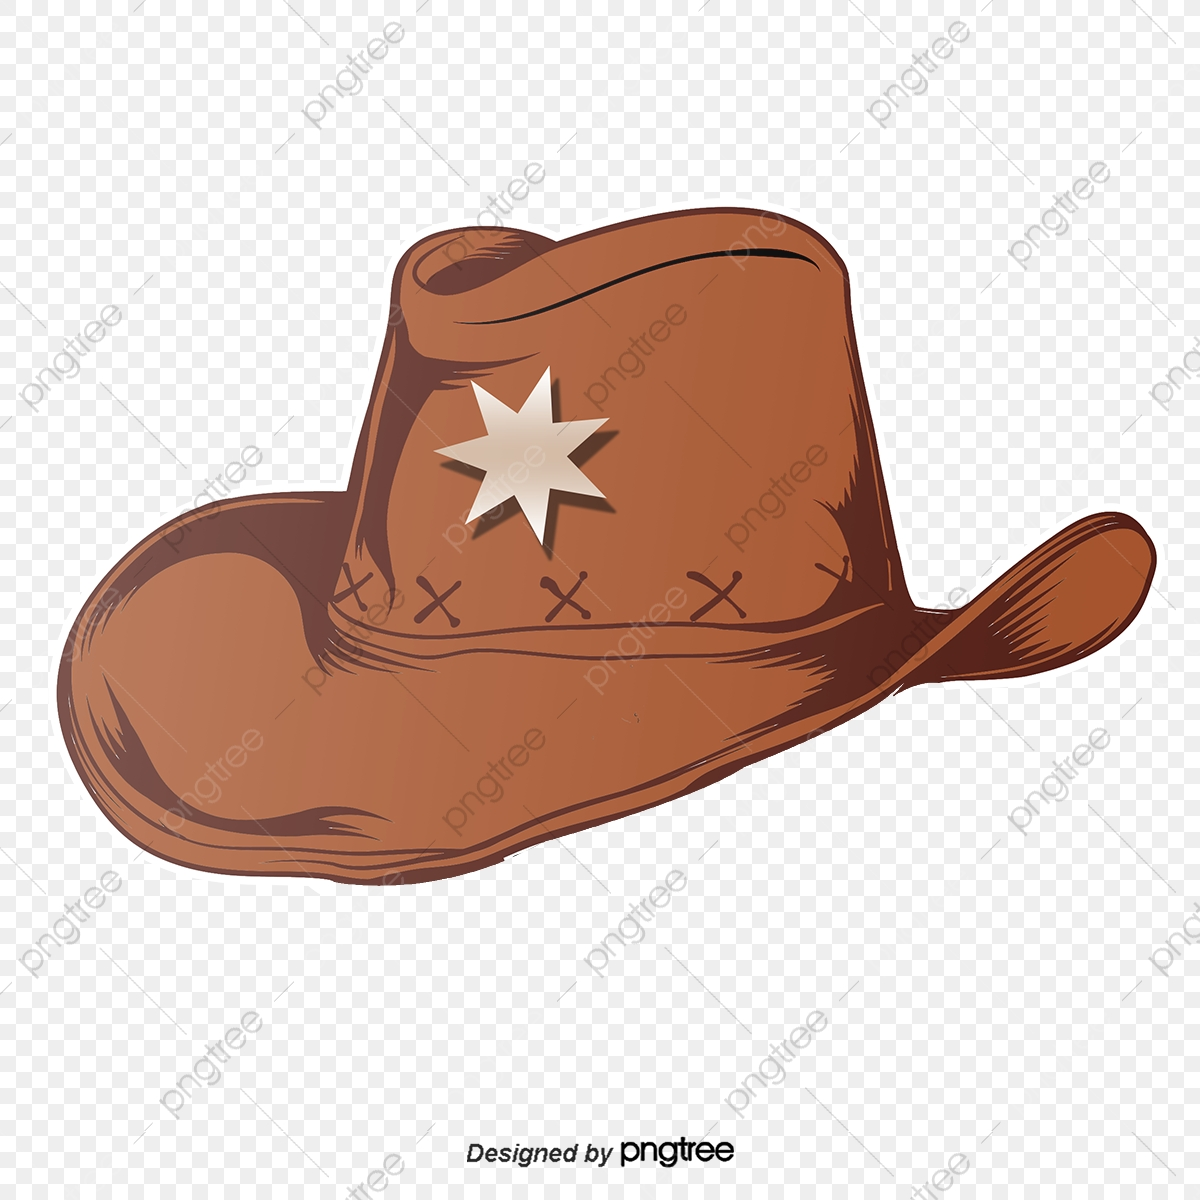 Cowboy Hat Vector Cowboy Hat Clipart Cowboy Vector Hat Vector Png Transparent Clipart Image And Psd File For Free Download Influenced by 19th century mexican culture, today it is worn by many people, and is particularly associated with ranch workers in the western and southern united states, western. https pngtree com freepng cowboy hat vector 3413137 html